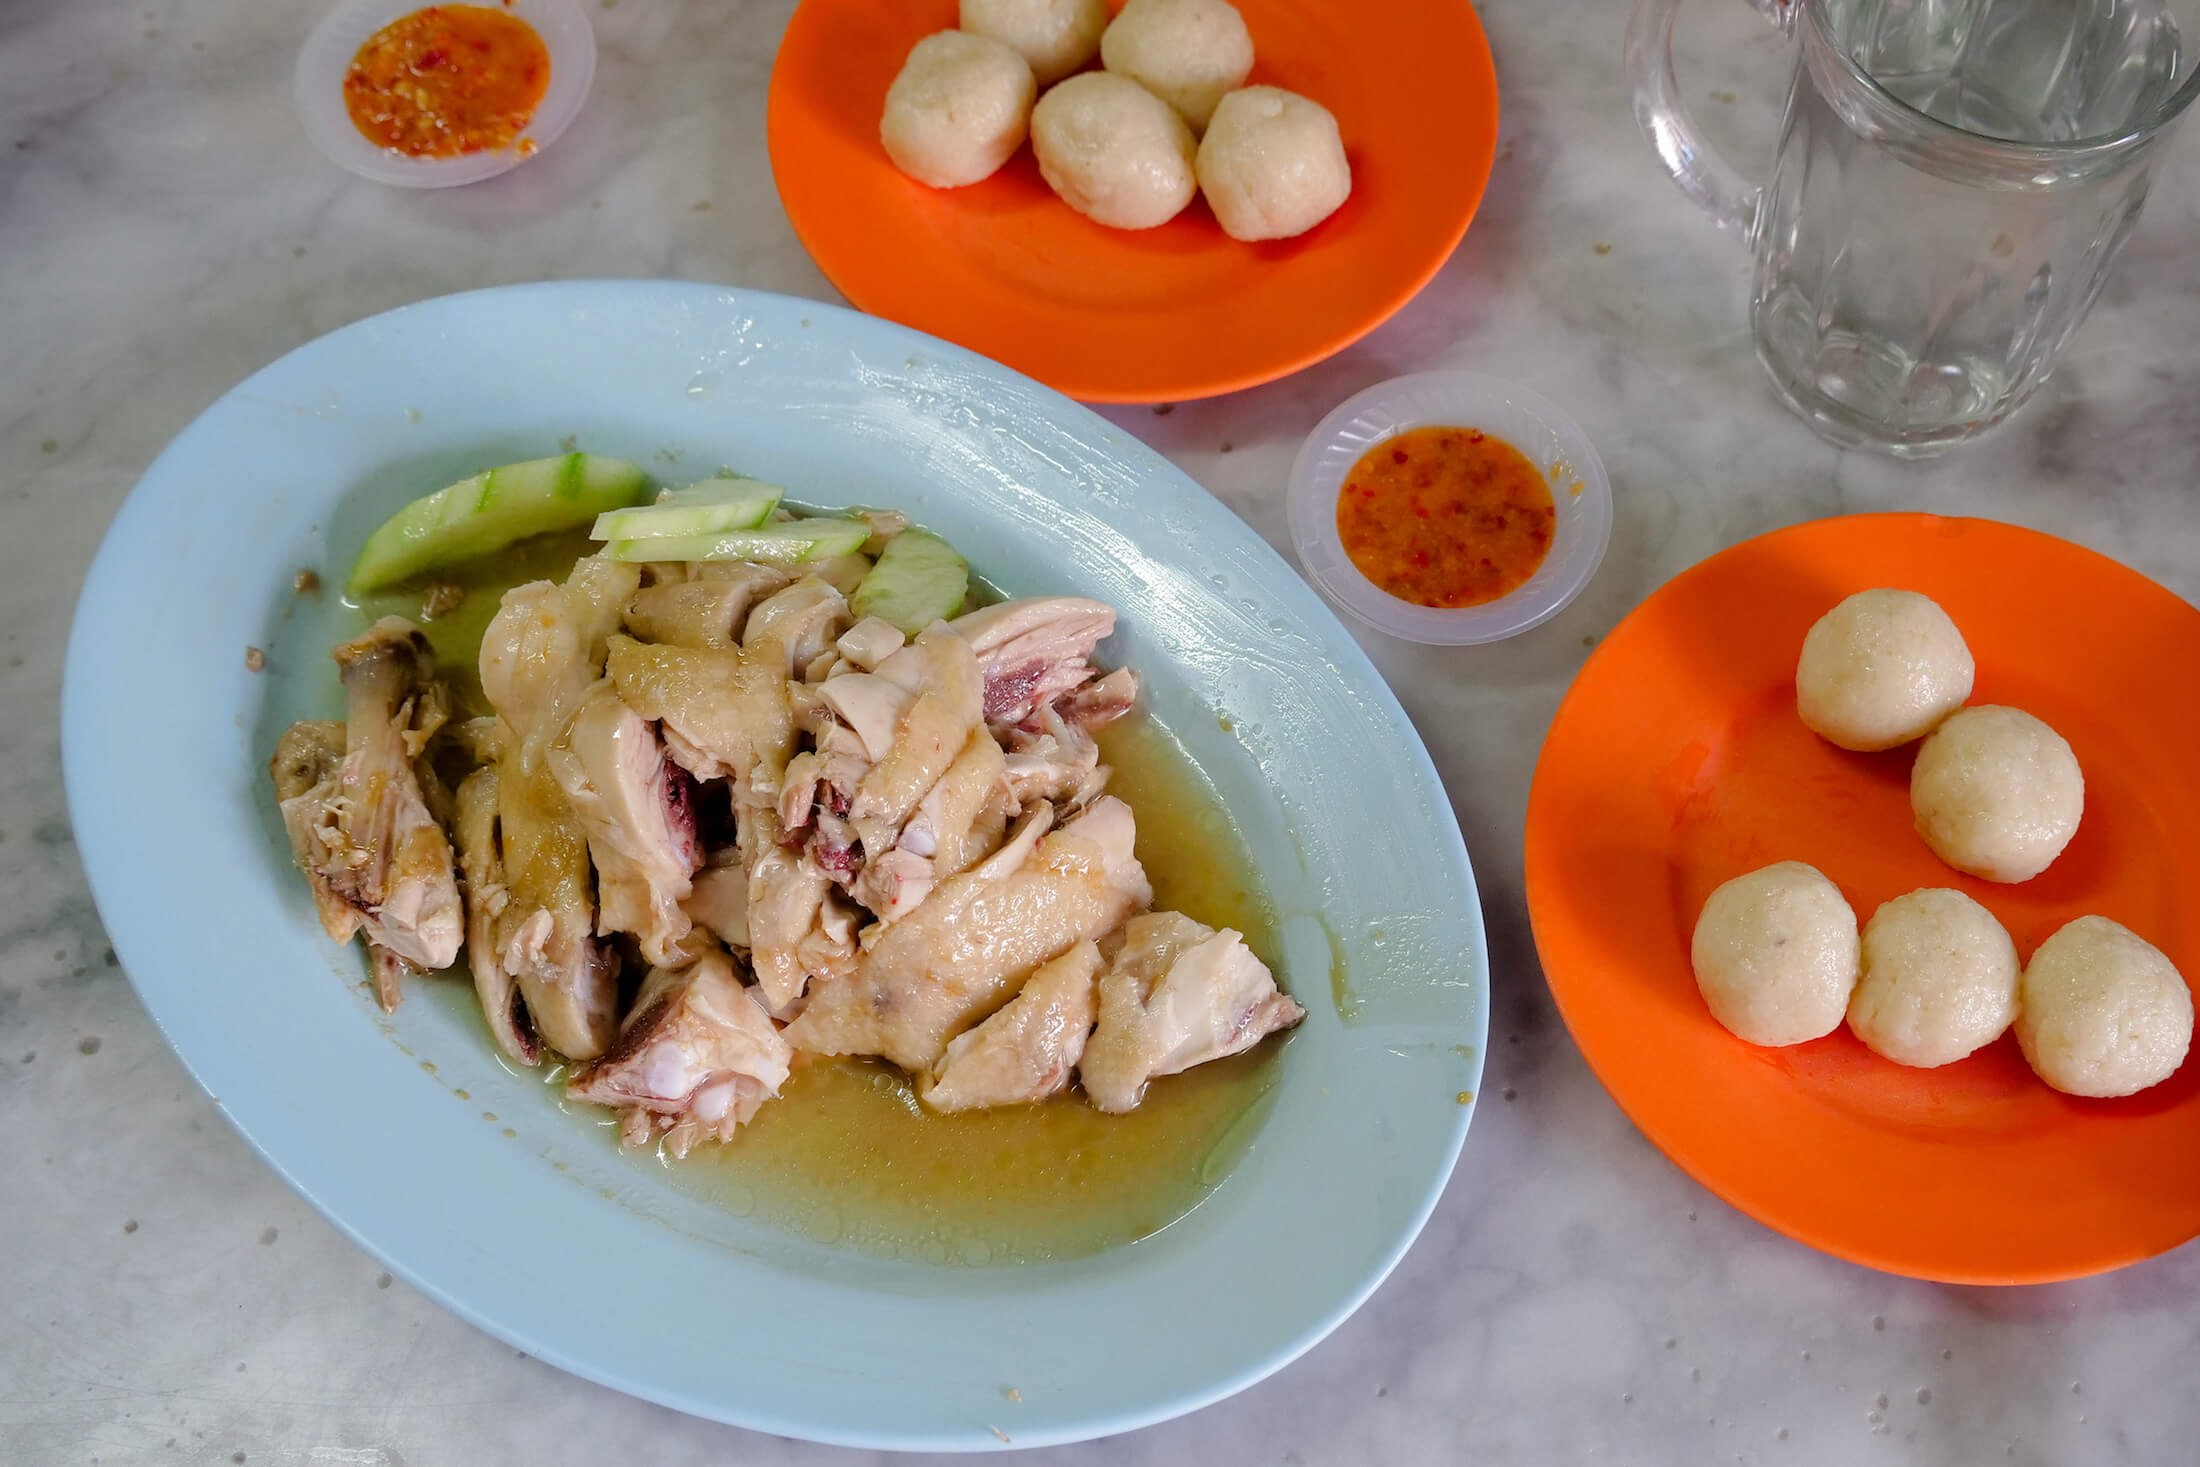 braised chicken and amazingly soft rice balls served at the Melaka restaurant named Kedai Kopi Chung Wah